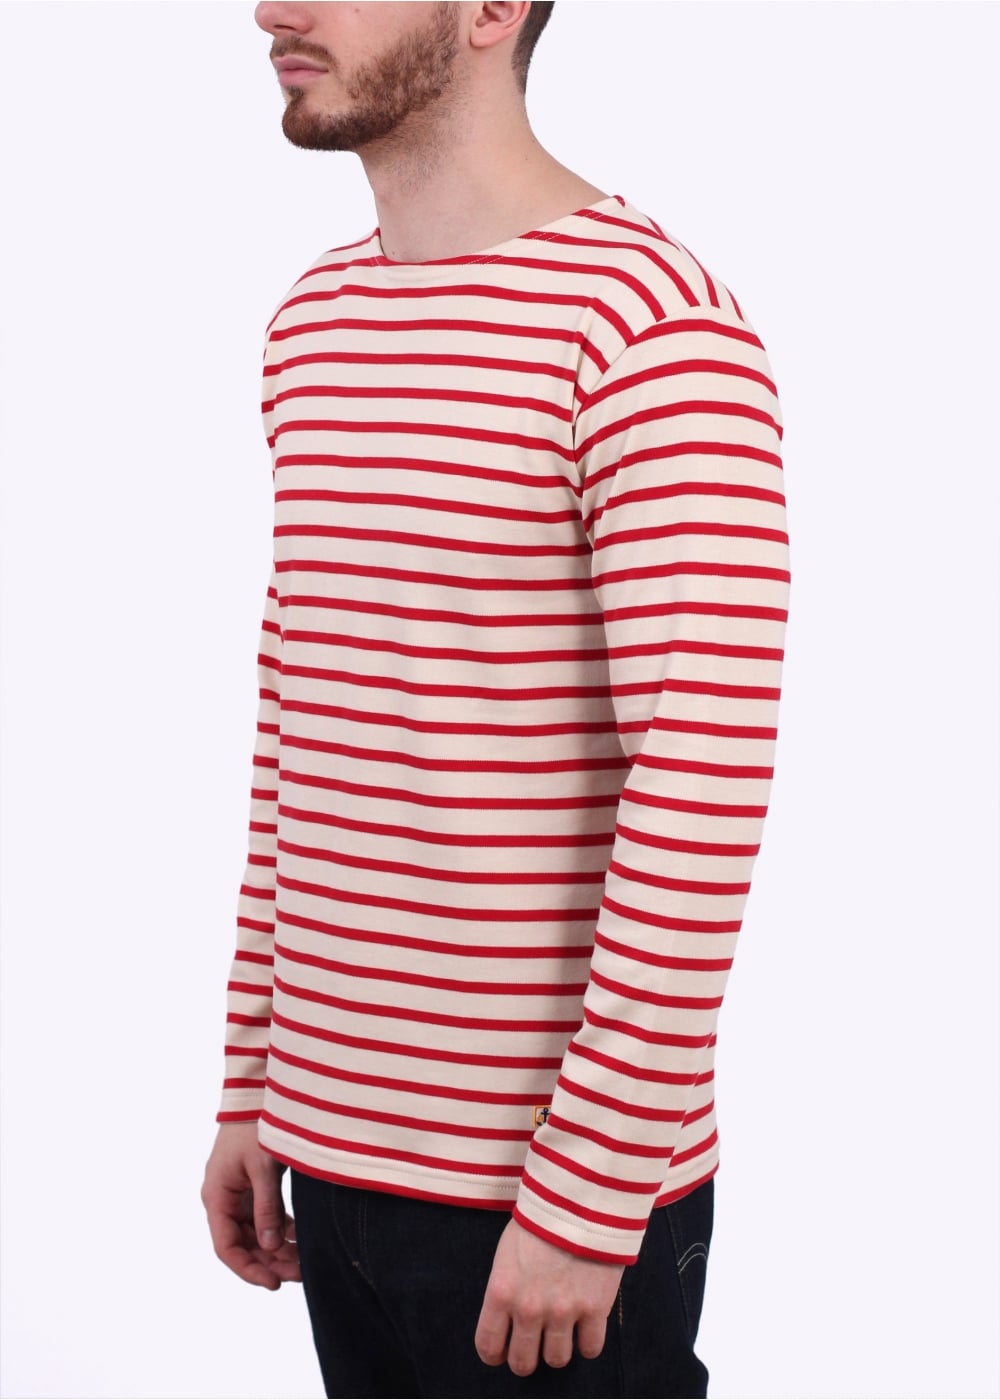 armor lux breton t shirt cream red